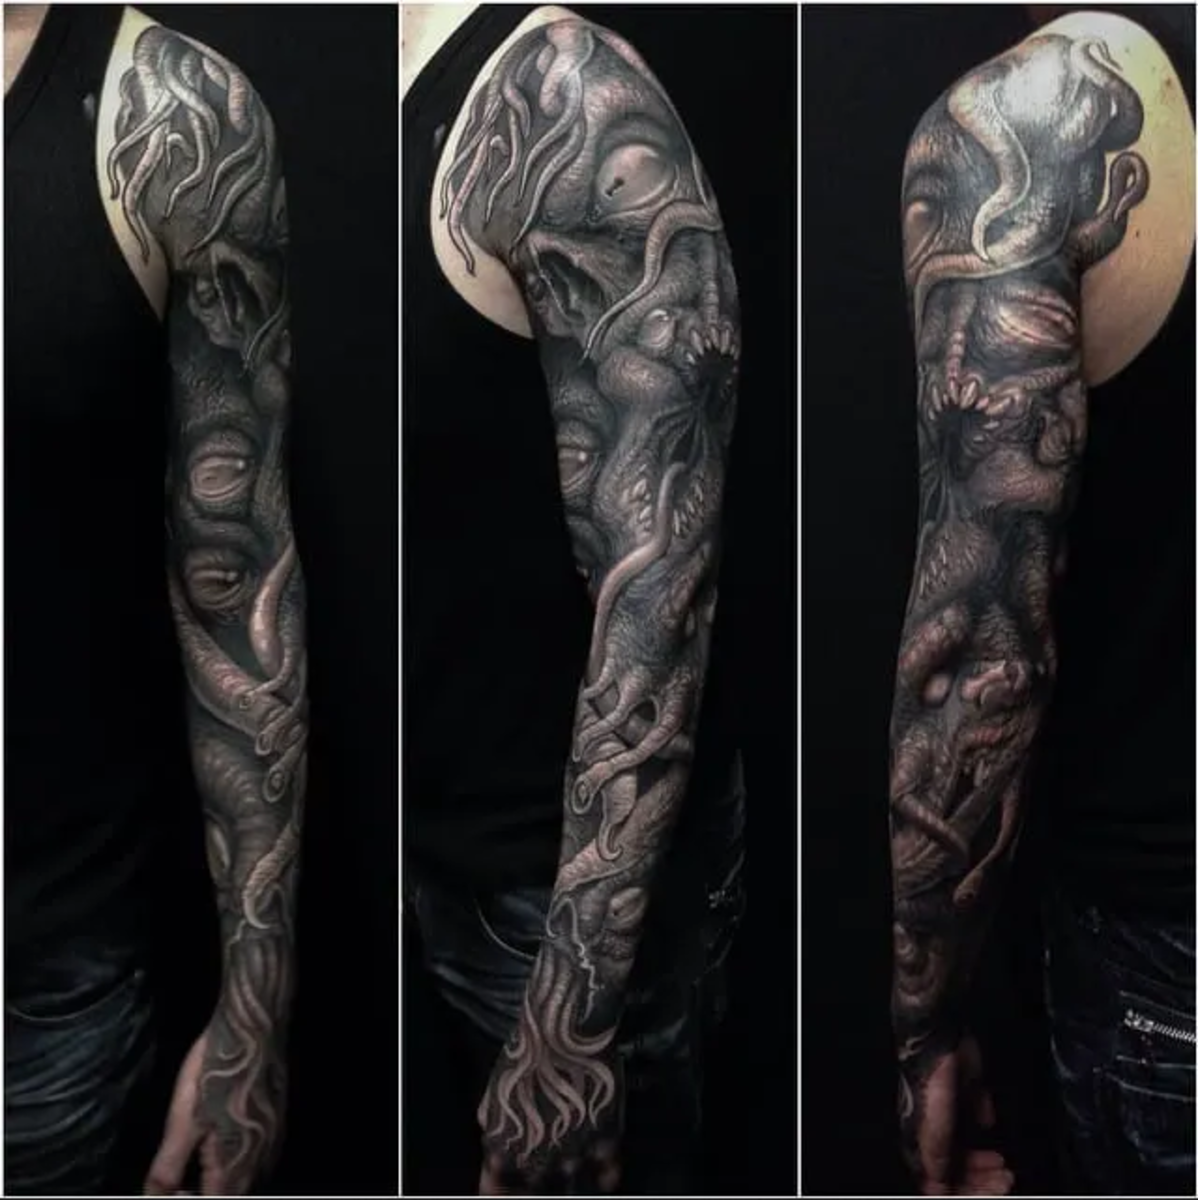 Tattoo by Clod The Ripper